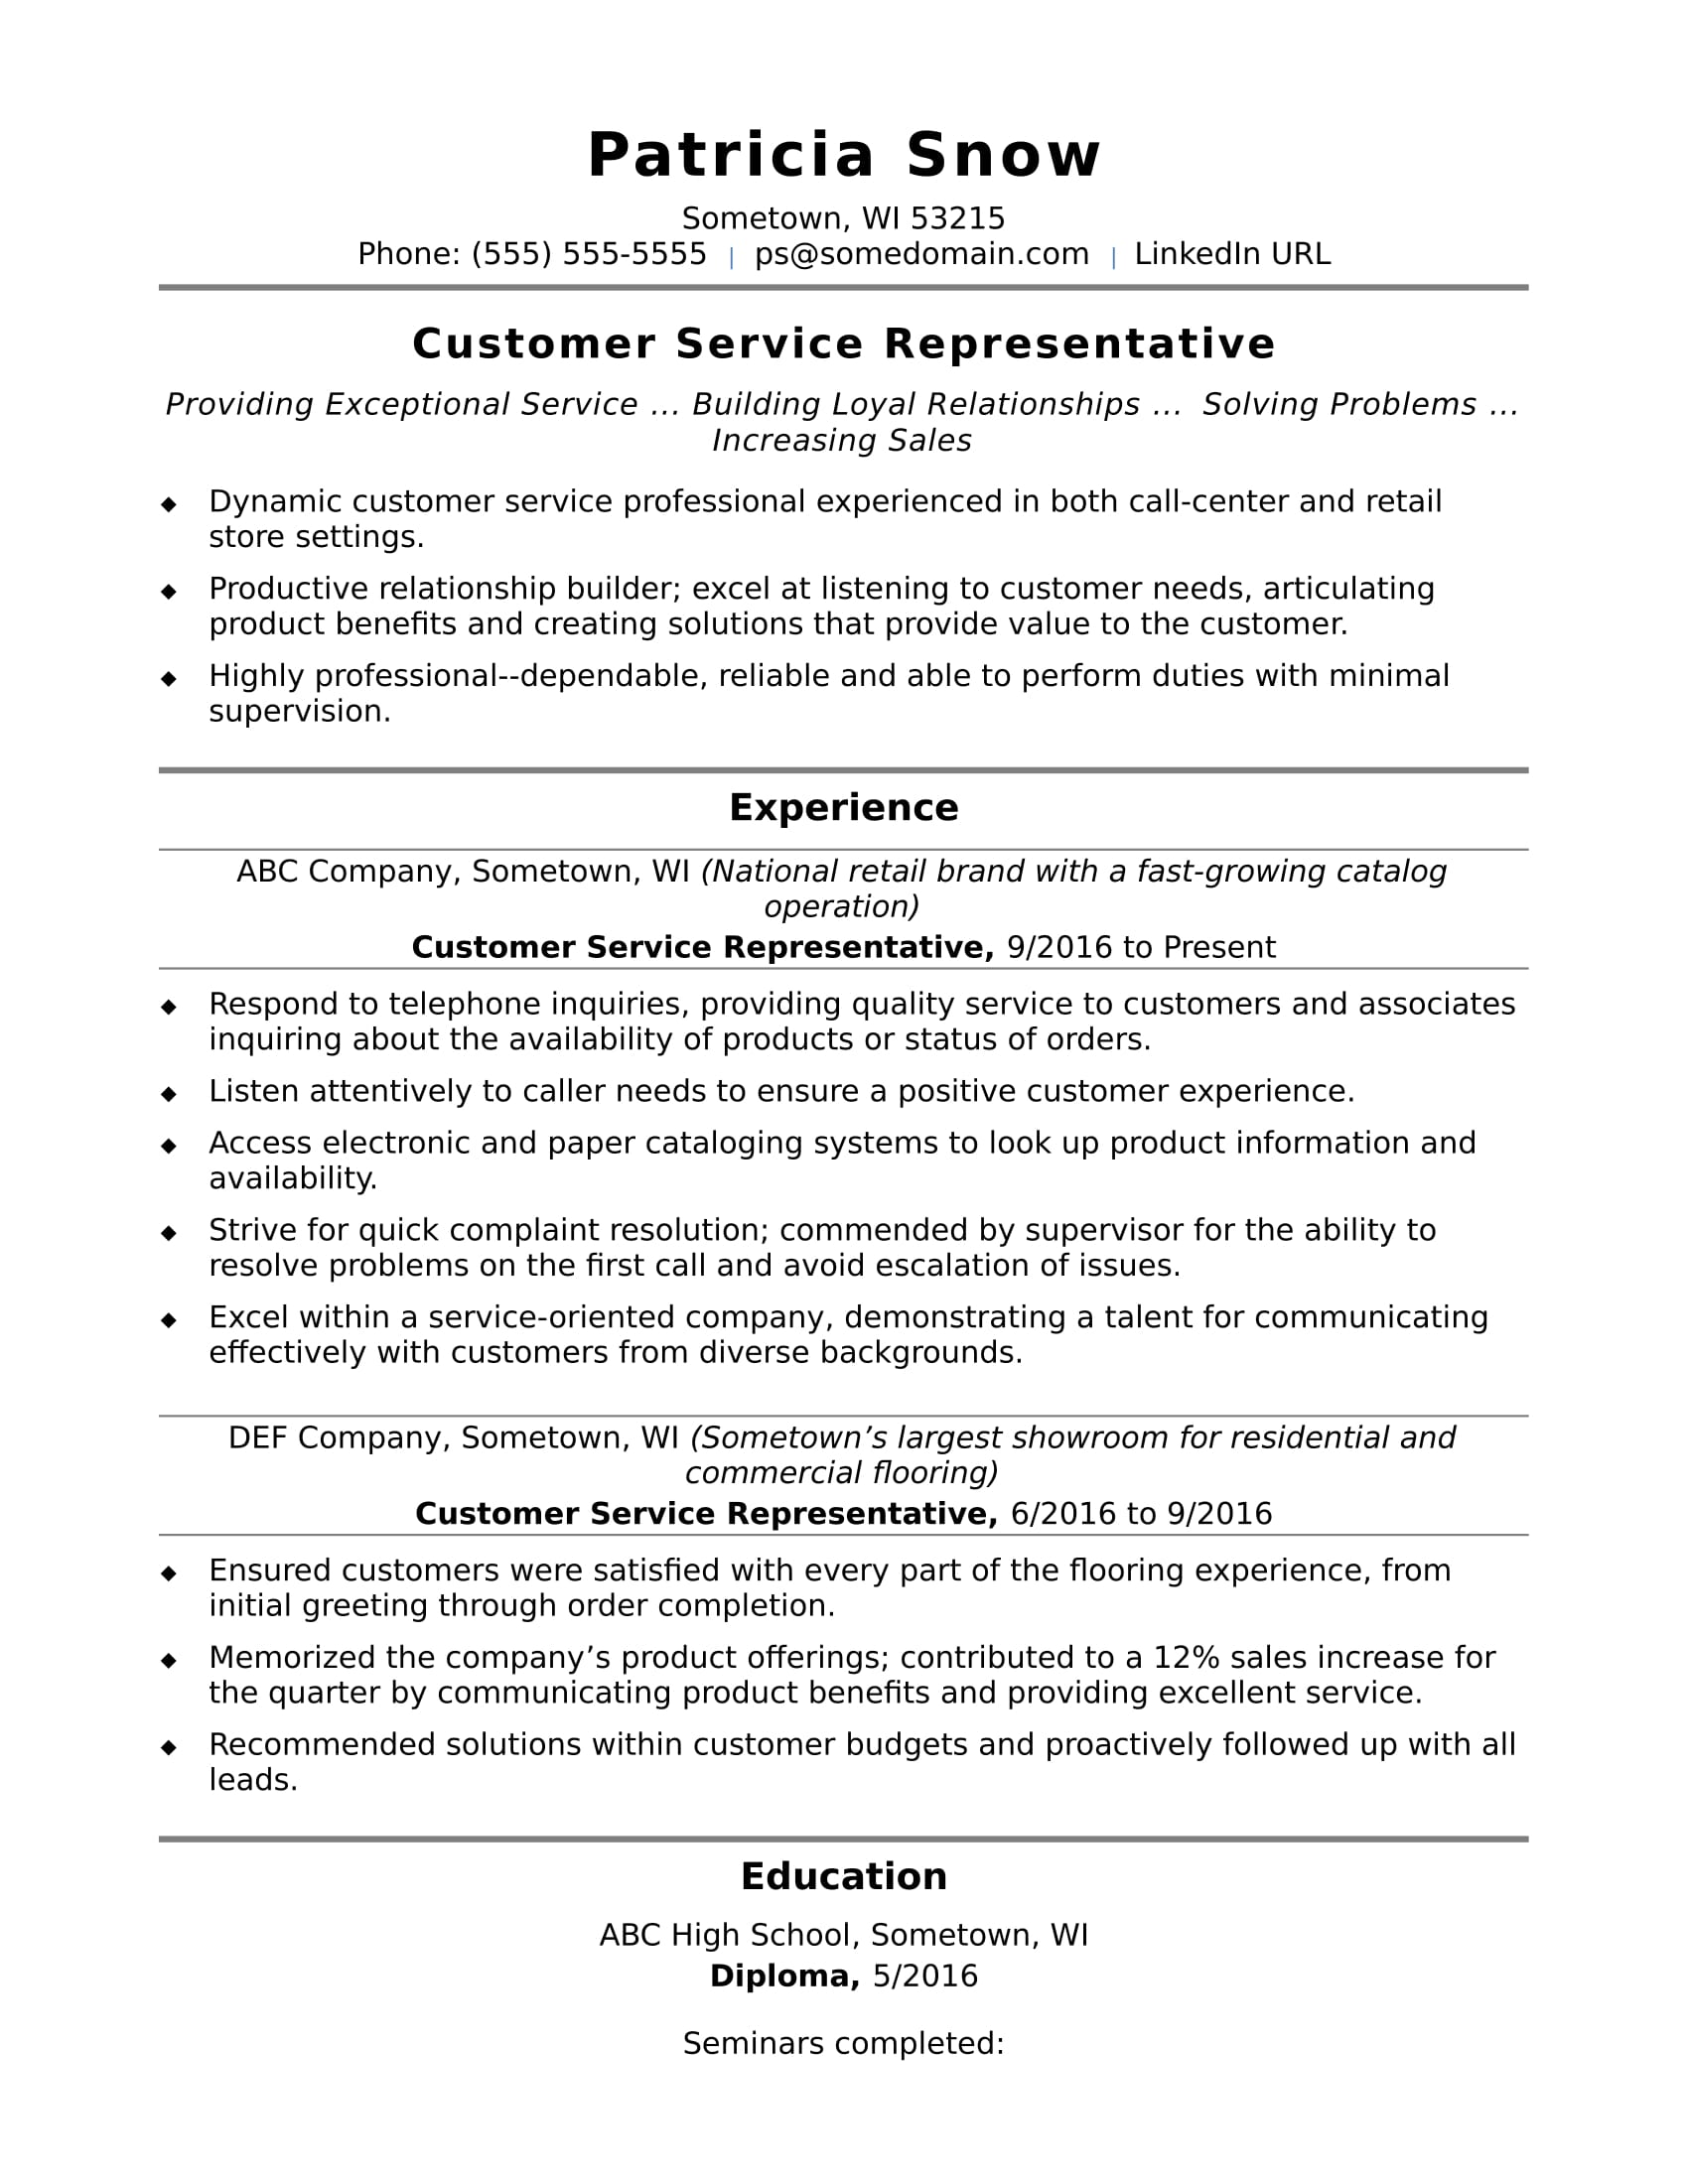 customer service representative resume sample monster job description entry level scanner Resume Customer Service Representative Job Description Resume